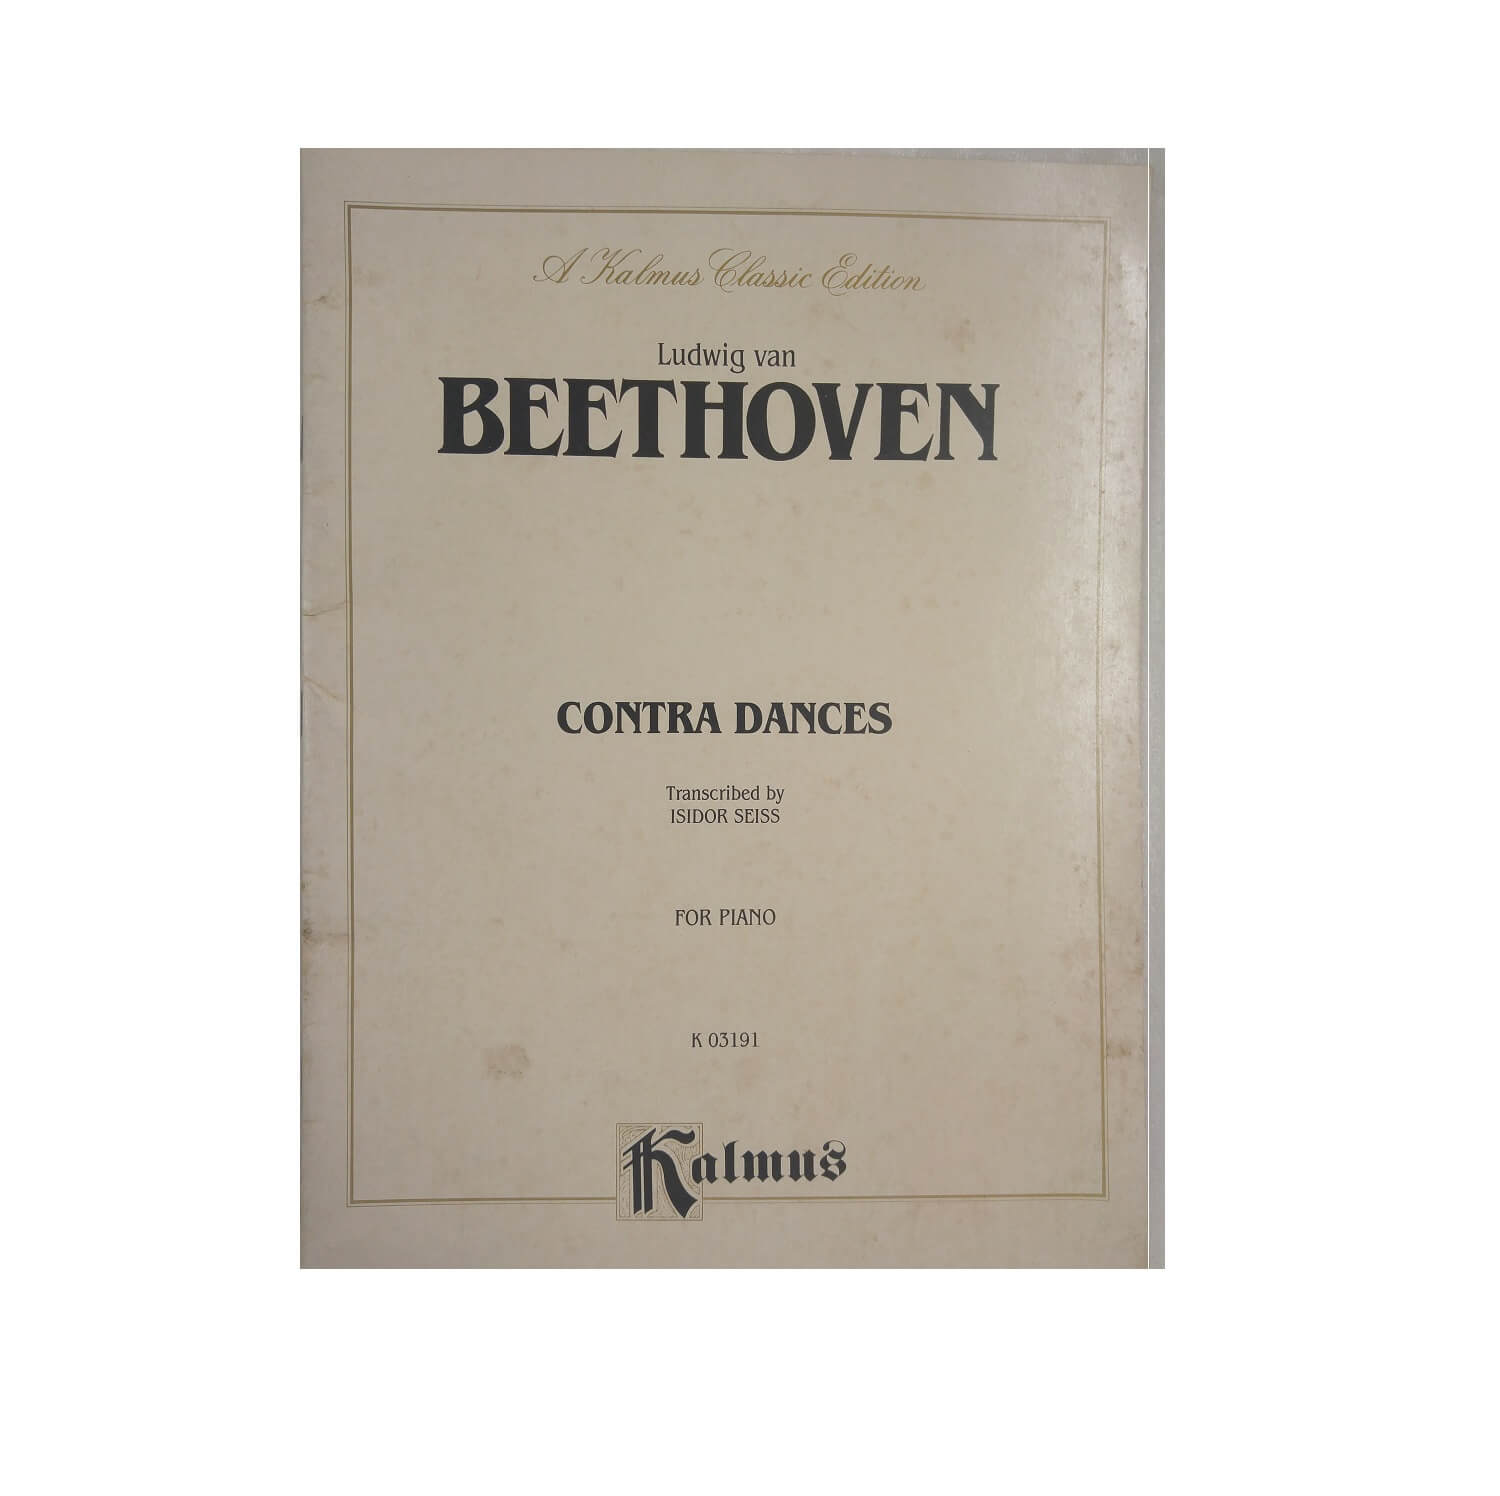 Ludwig van Beethoven Contra Dances Transcribed by Isidor Seiss for Piano K03191